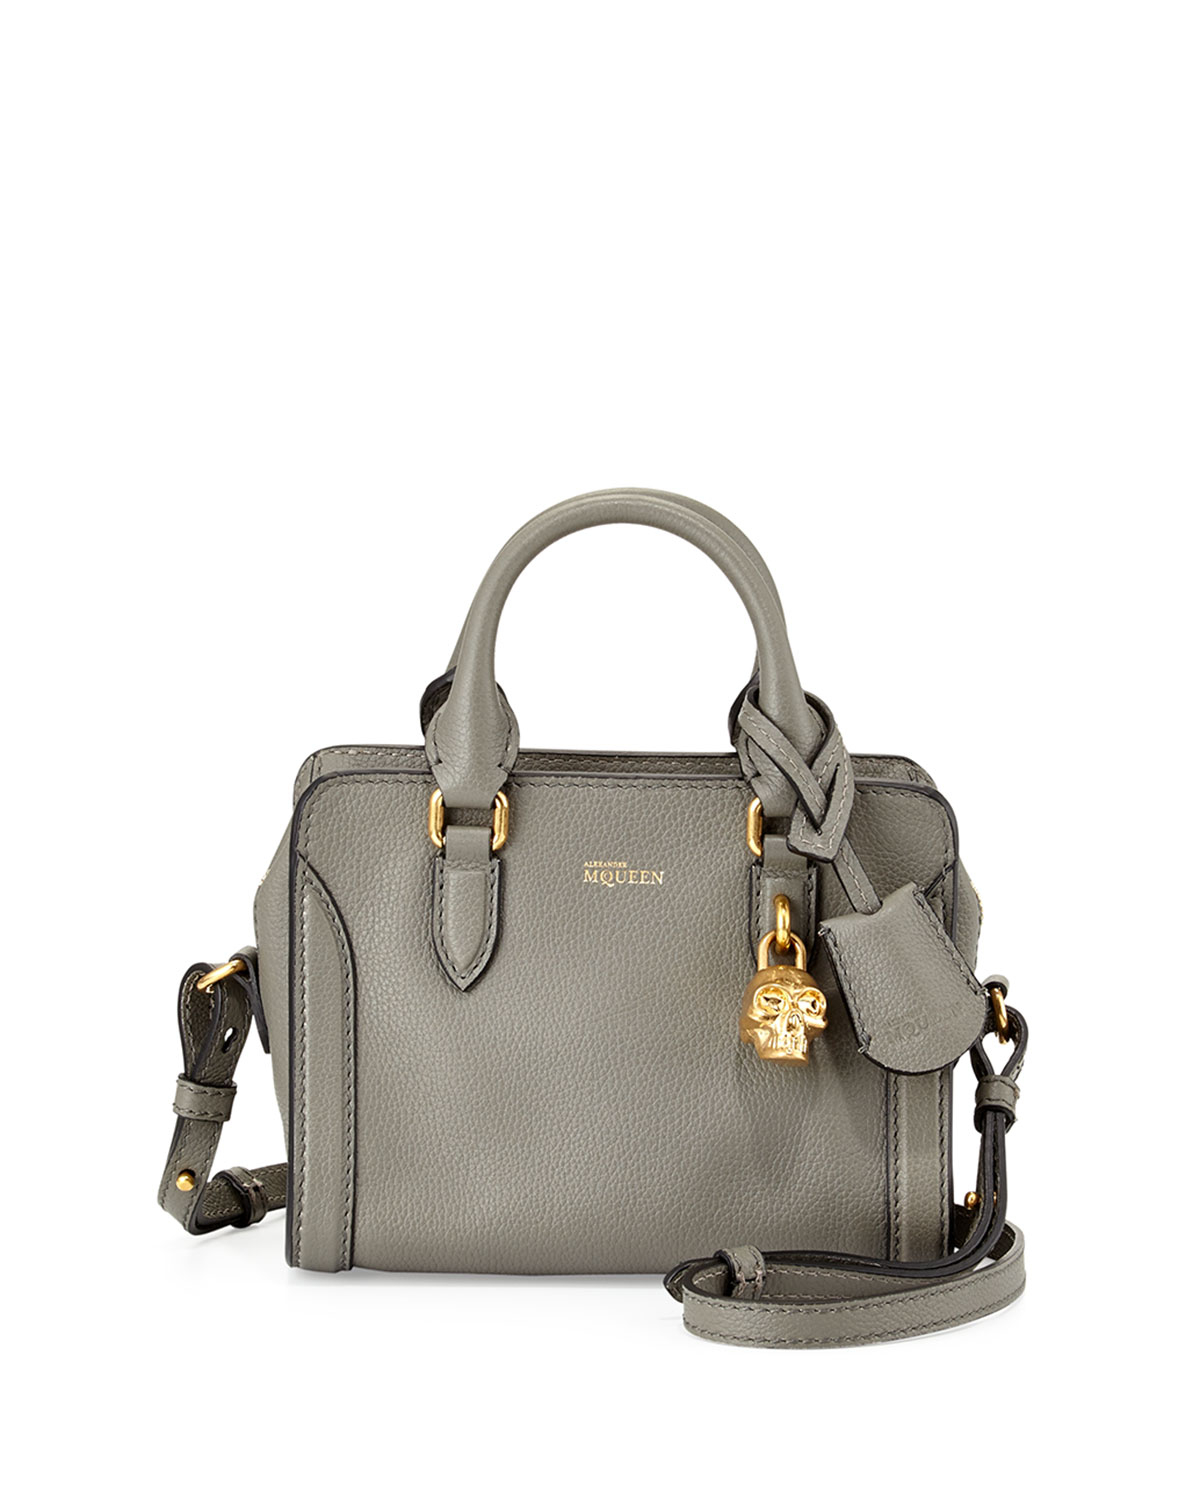 Alexander mcqueen Mini Skull Leather Satchel Bag in Gray | Lyst